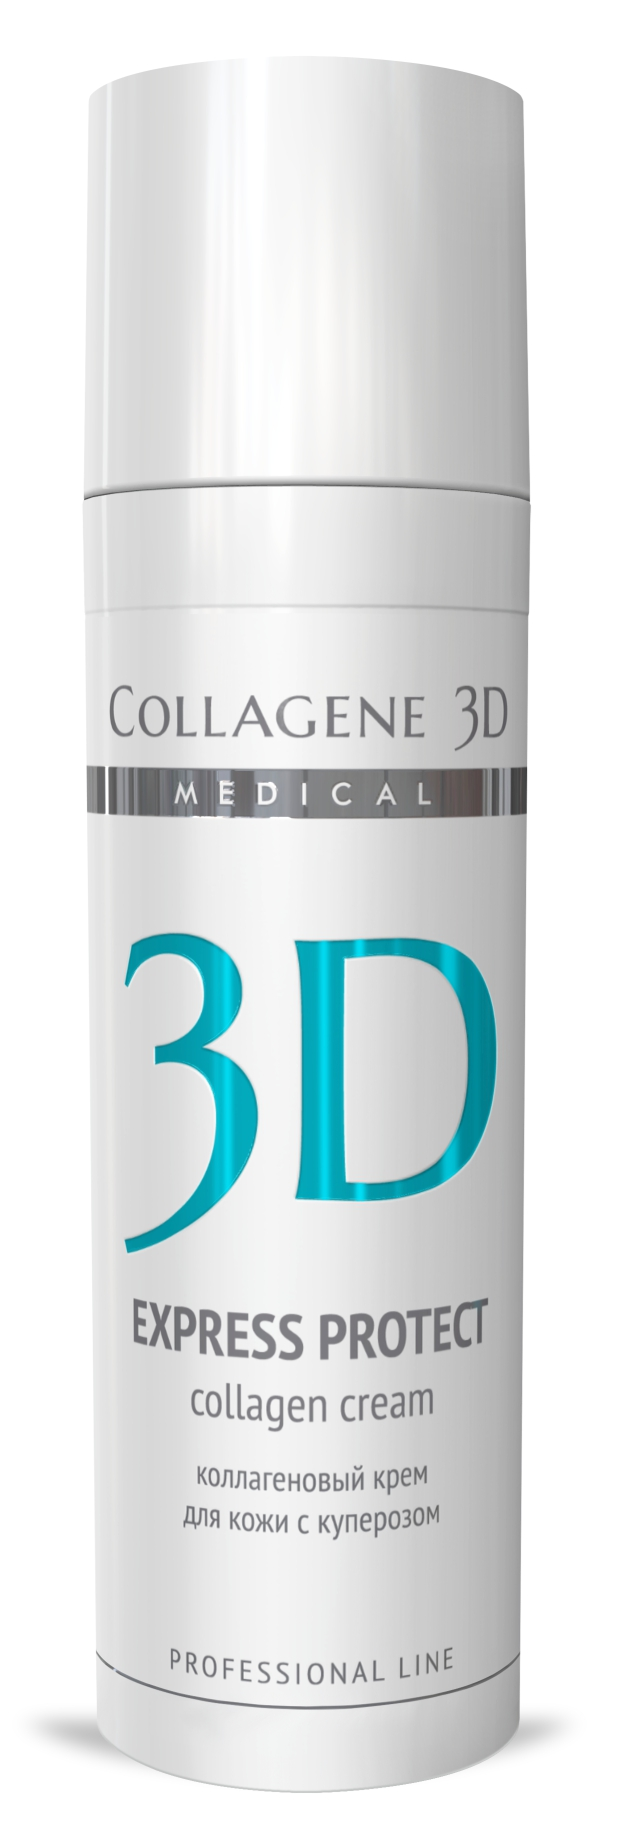 MEDICAL COLLAGENE 3D Крем с коллагеном и софорой японской для лица / Express Protect 30 мл проф.